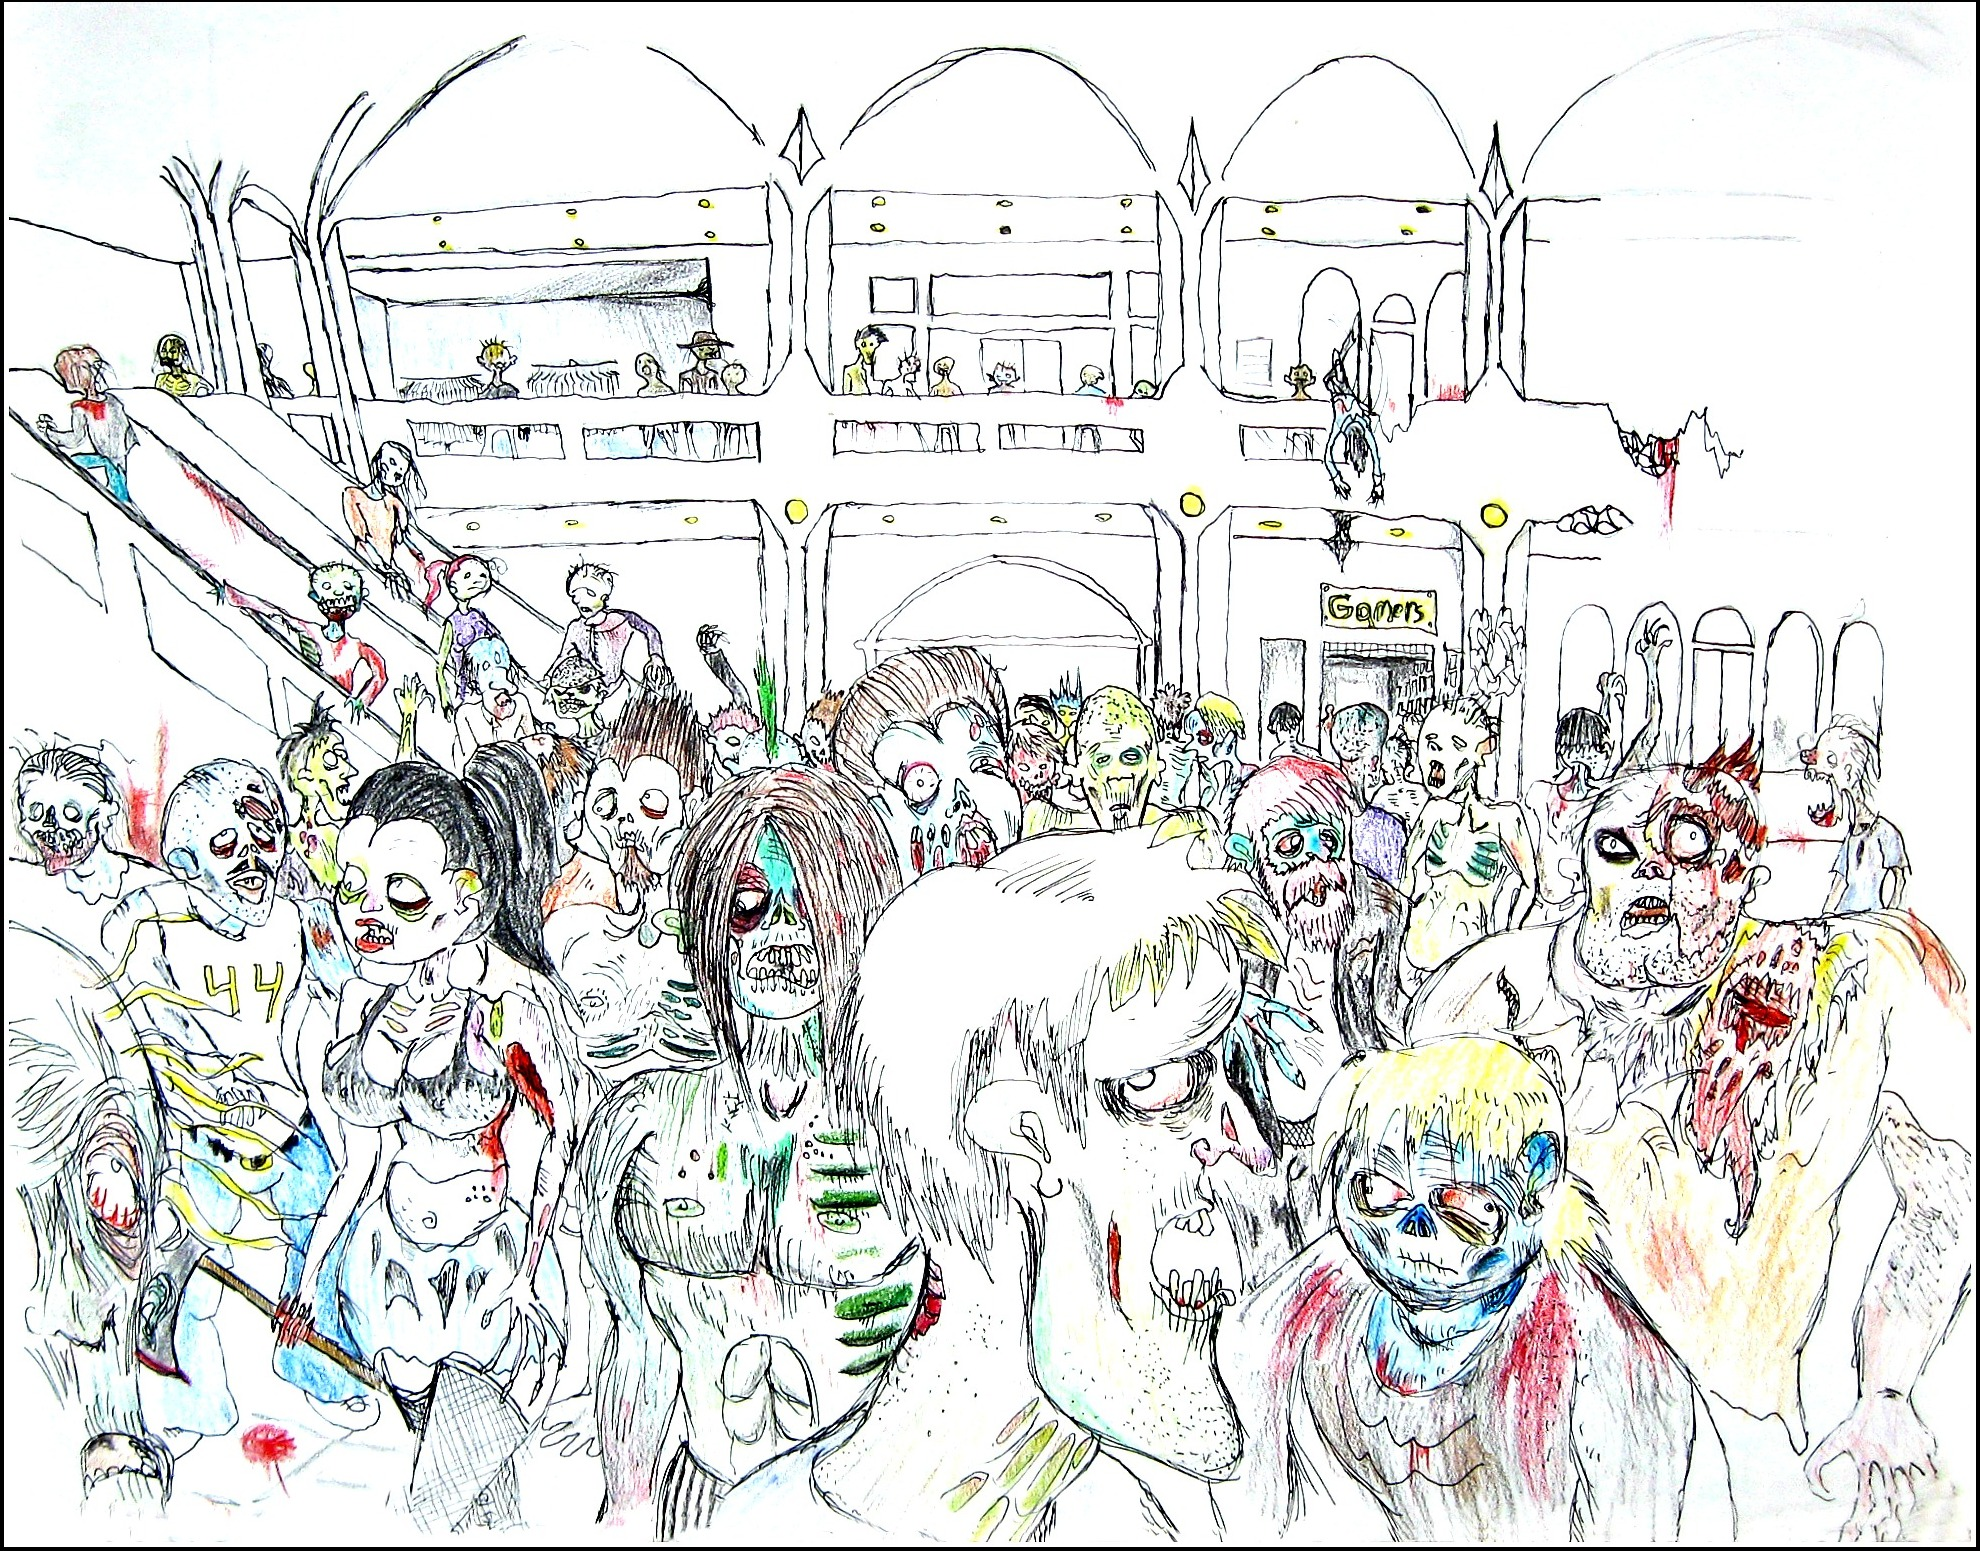 Zombies at the mall                              Spencer Rideout Pen and colored pencils photo print $45